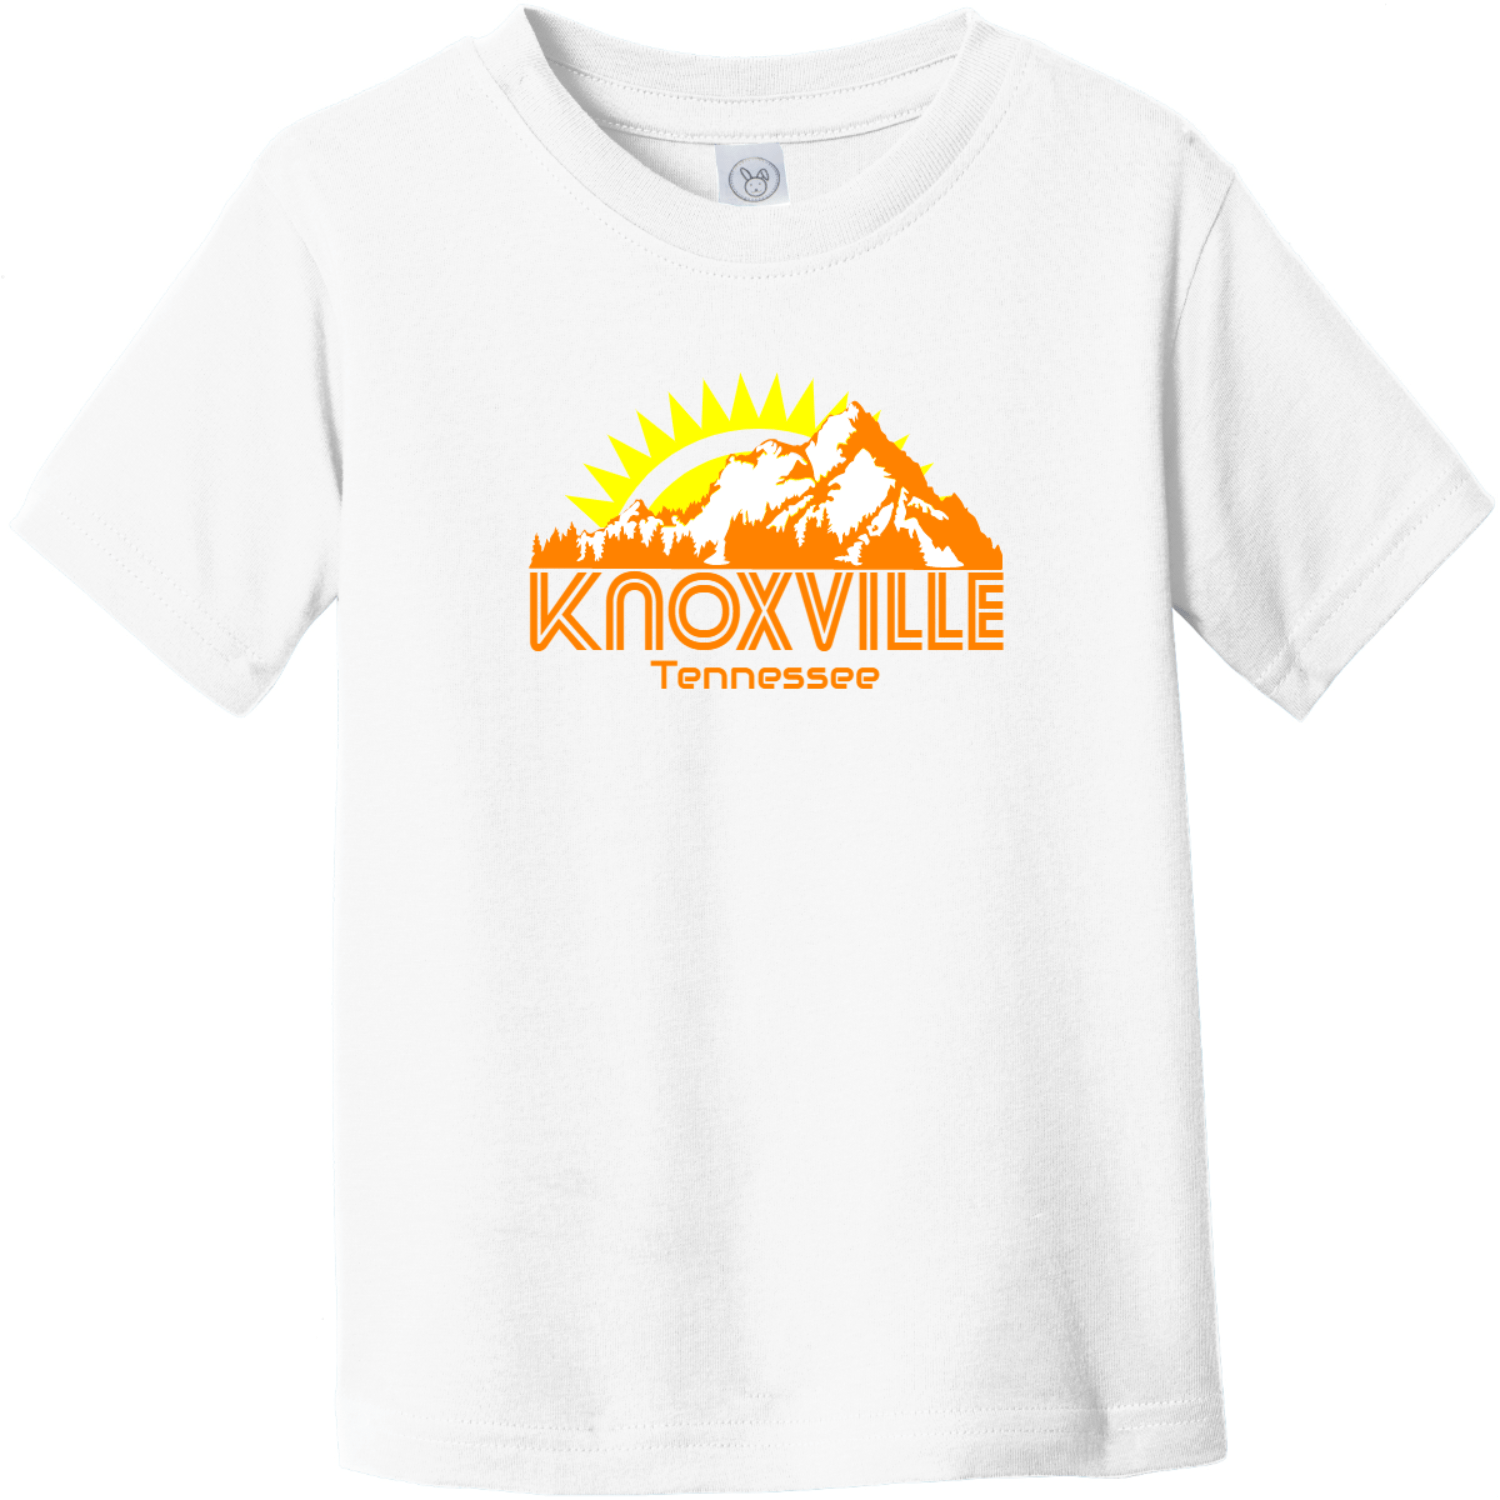 Knoxville Tennessee Mountains Toddler T Shirt White Rabbit Skins Toddler Fine Jersey Tee RS3321